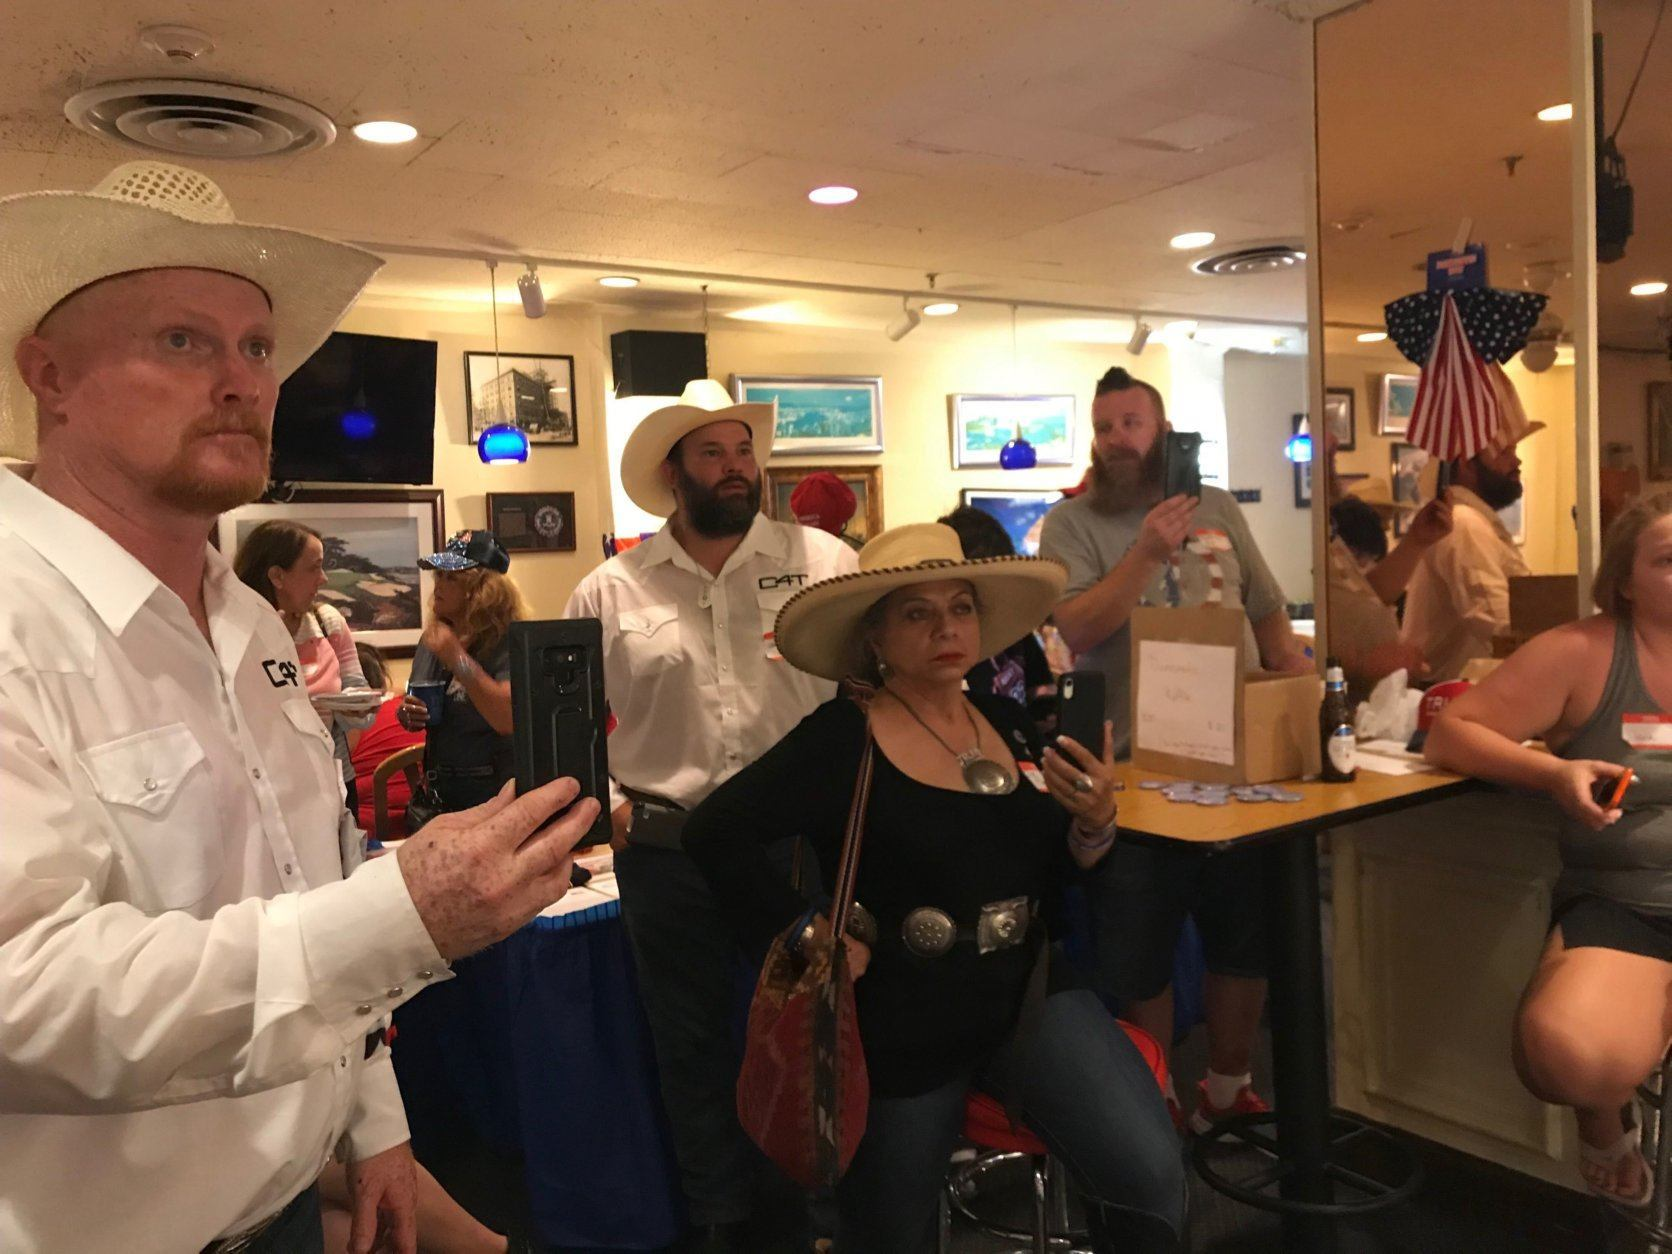 Cowboys for Trump came back to D.C. to show the president support on July 4. (WTOP/Dick Uliano)